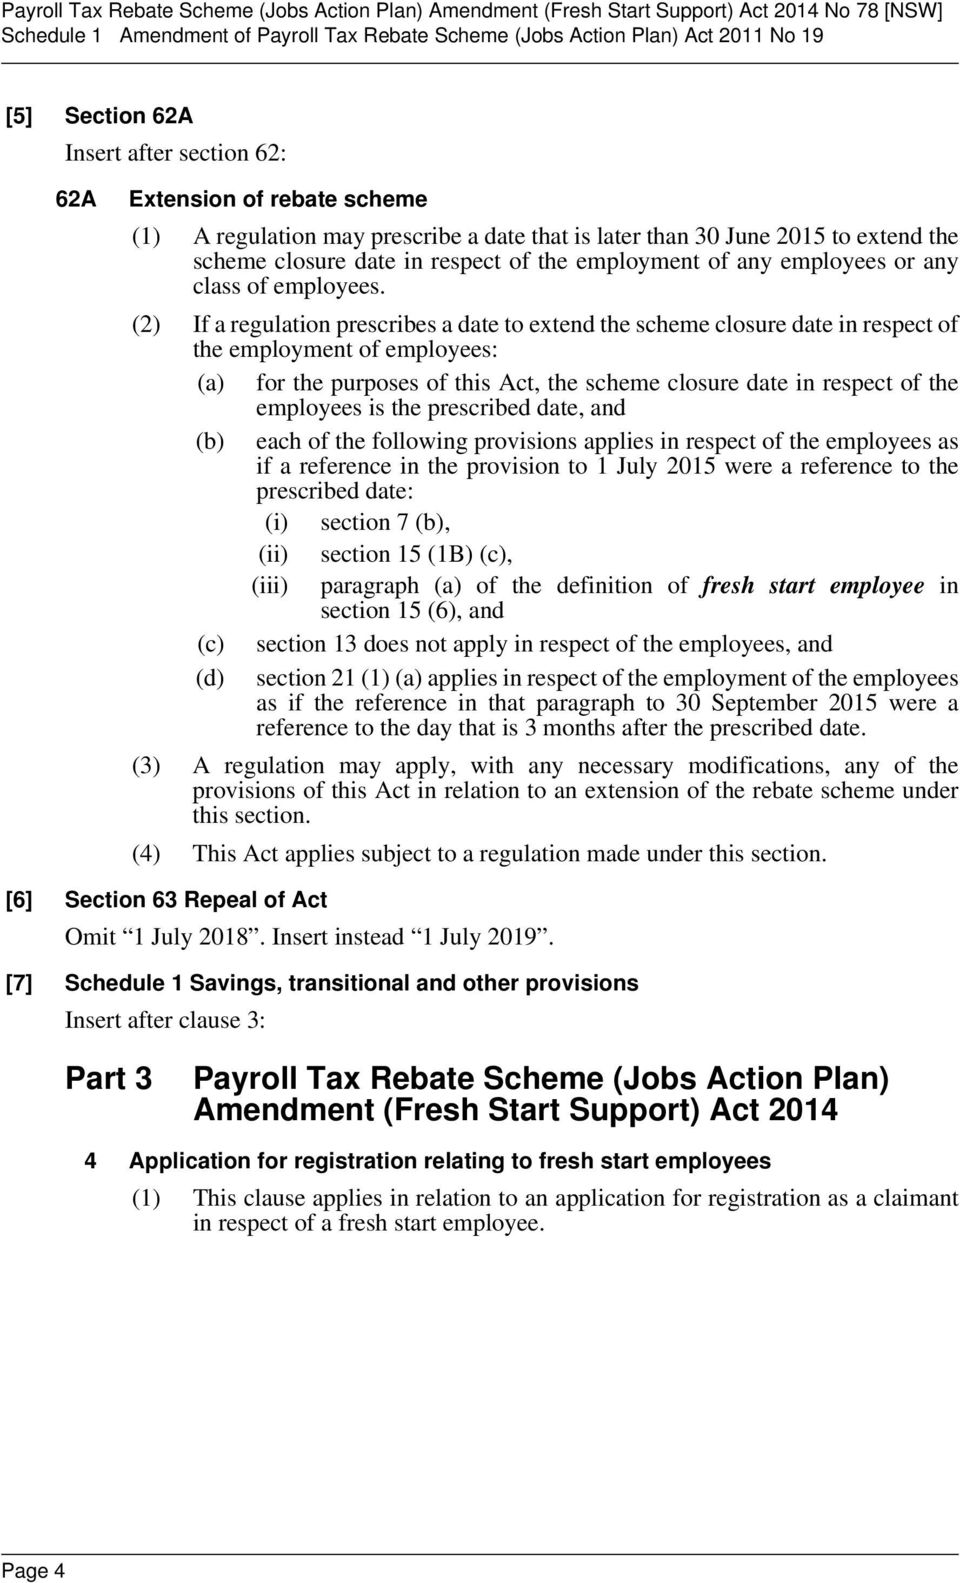 (2) If a regulation prescribes a date to extend the scheme closure date in respect of the employment of employees: (a) for the purposes of this Act, the scheme closure date in respect of the